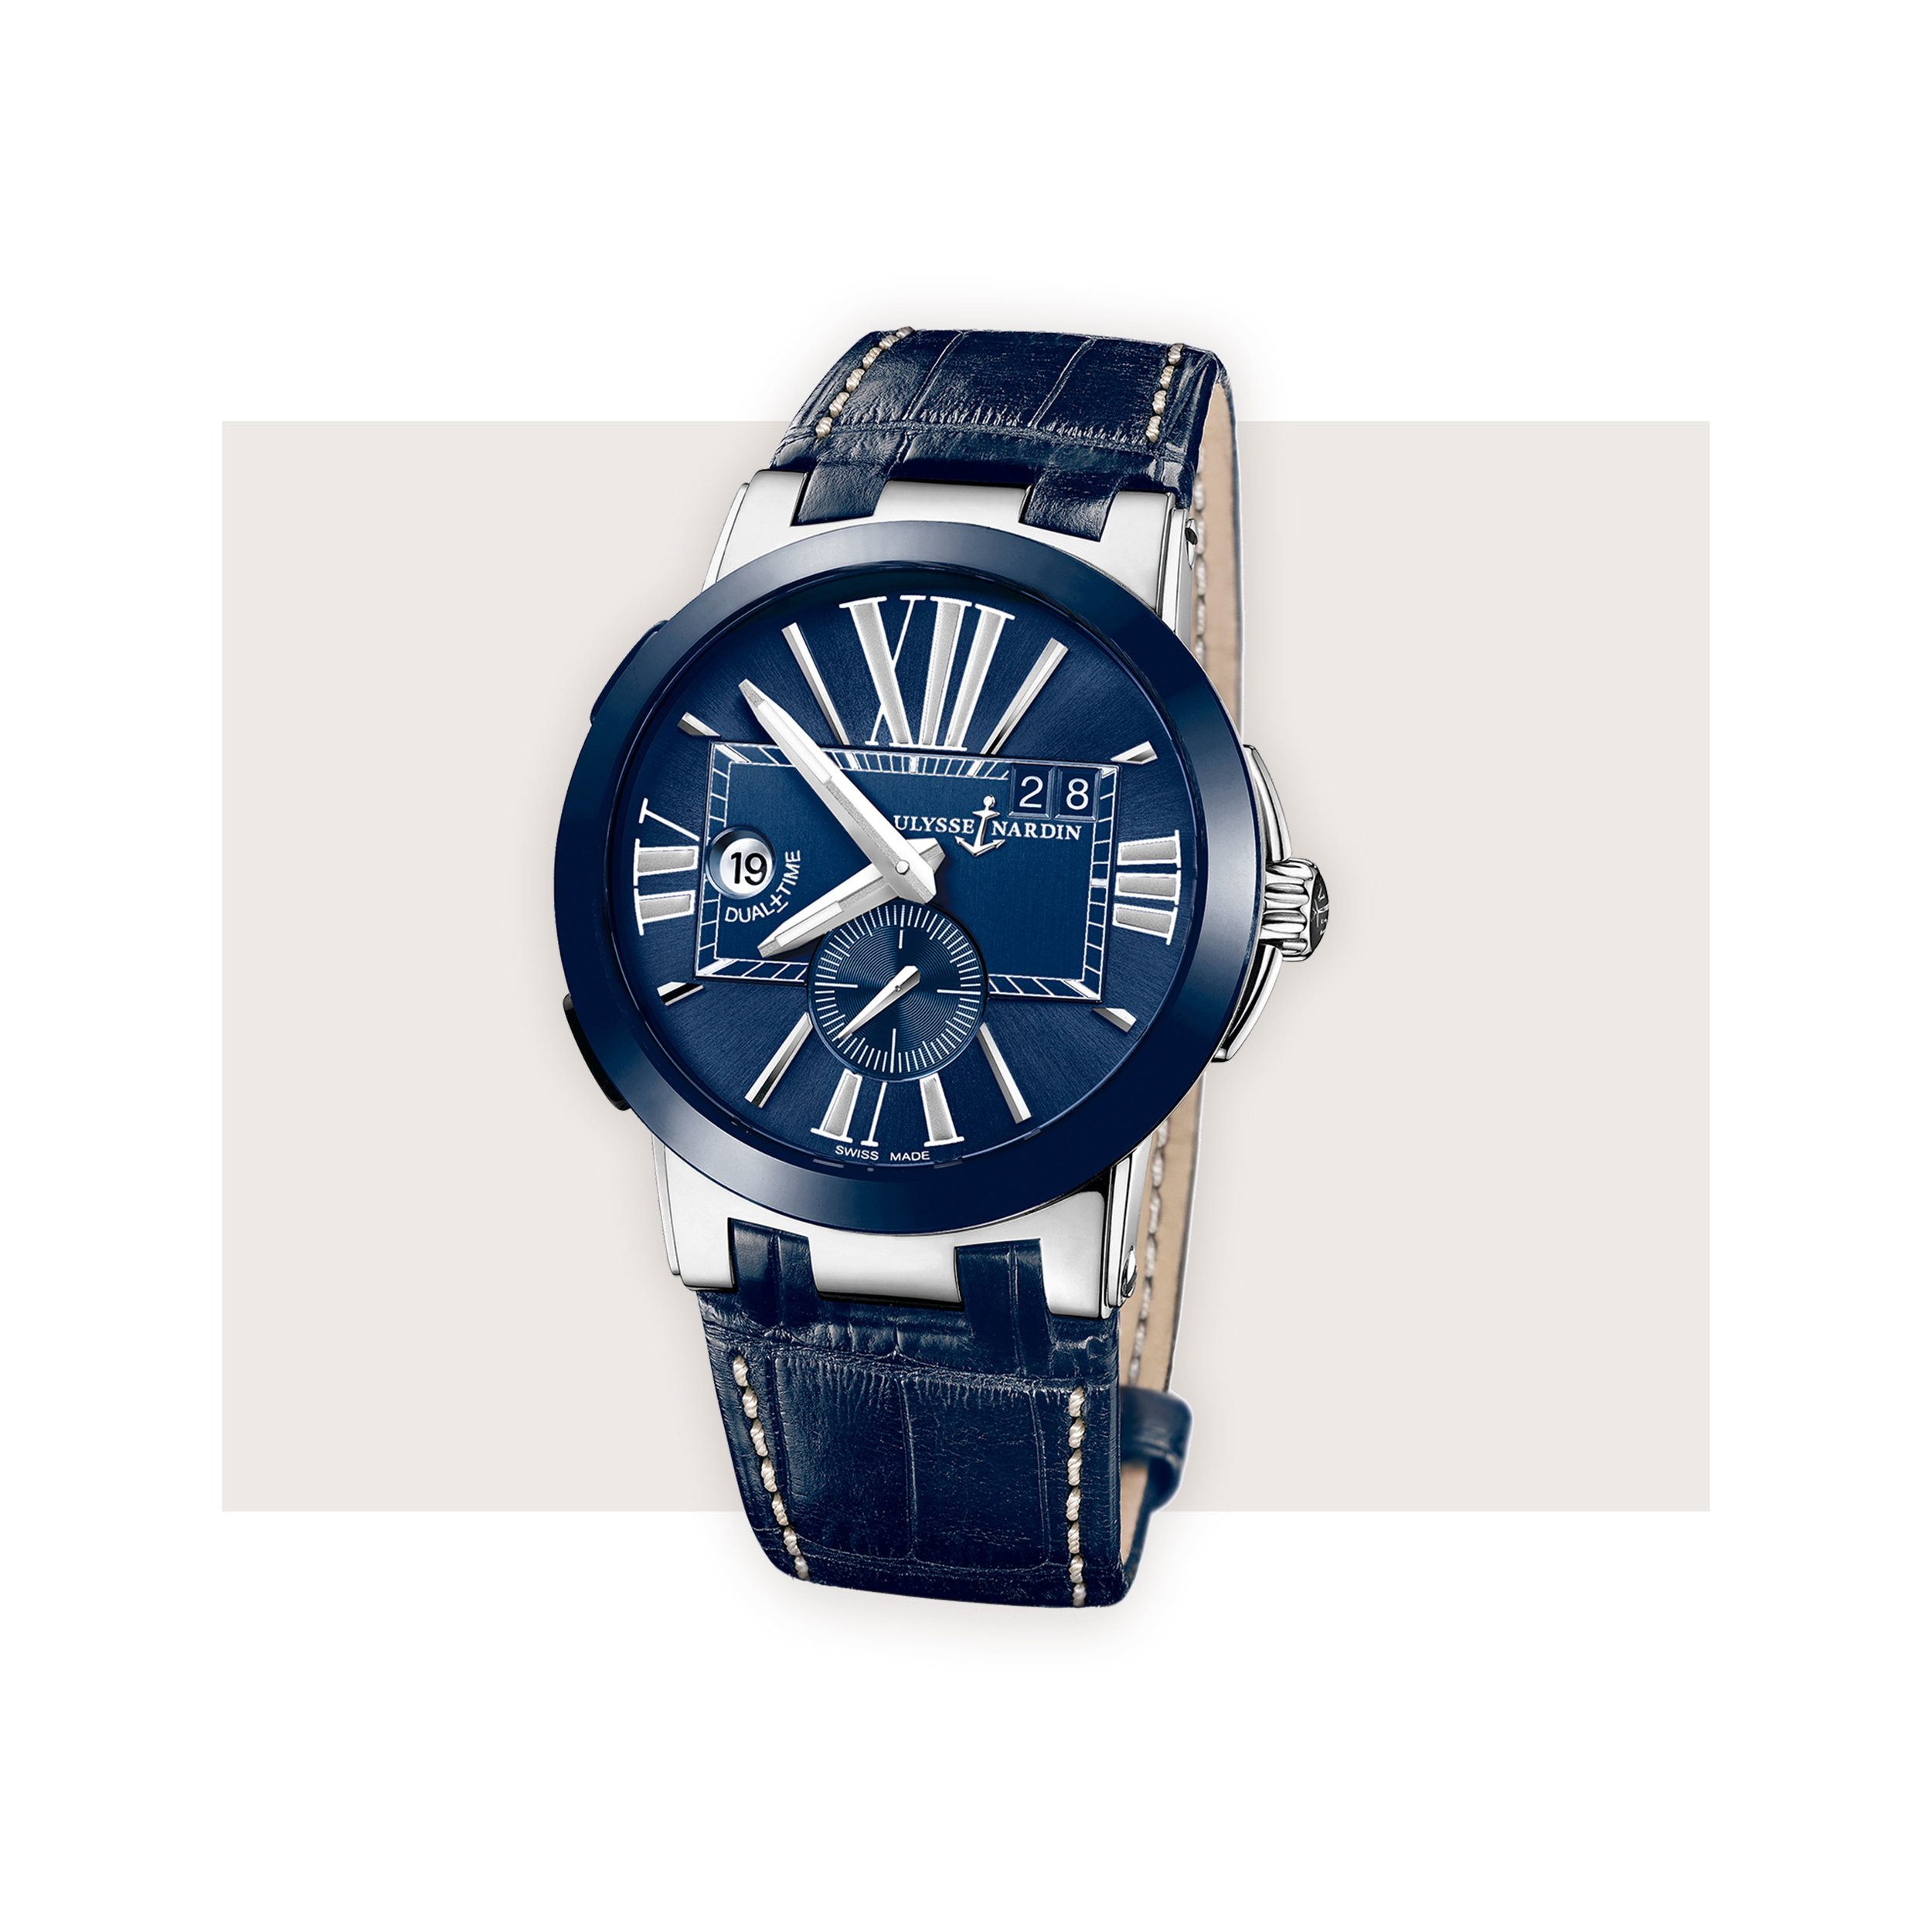 Ulysse Nardin - An elegant and legible dual time from independent watch maker Ulysse Nardin is great for travelers – especially those prone to time-zone hopping business trips.Ulysse Nardin Executive Dual Time, $8,700; troverie.com